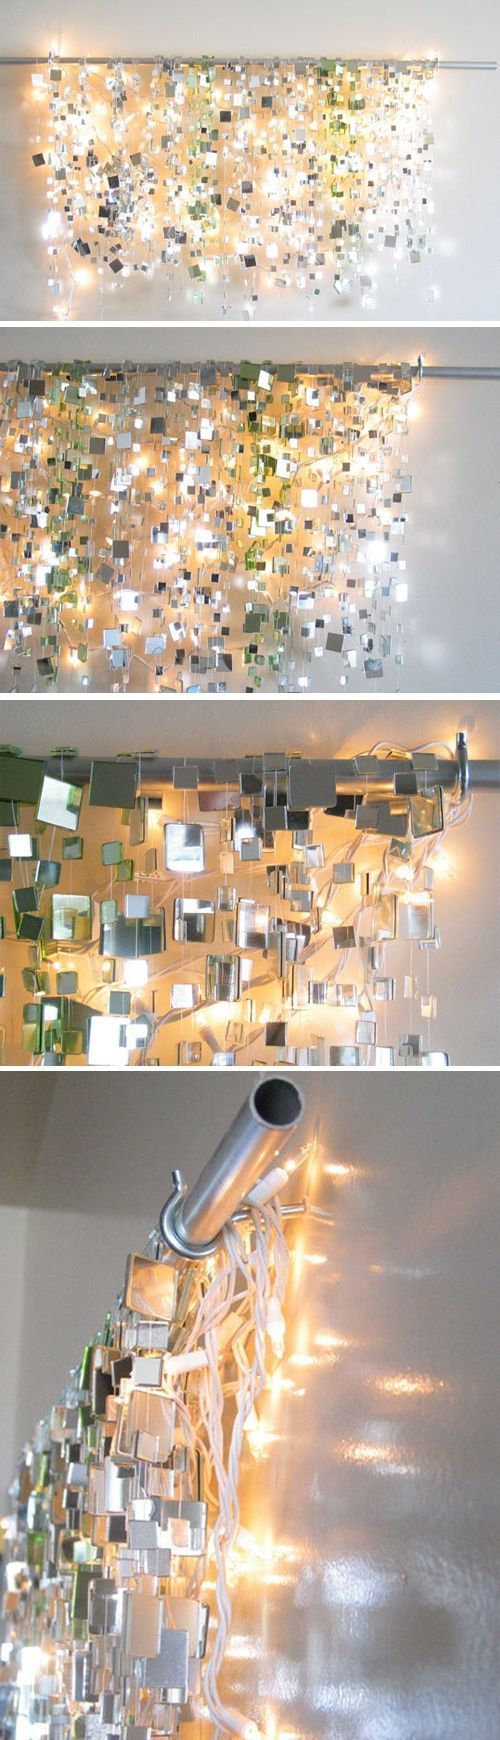 Mirrors and lights backdrop